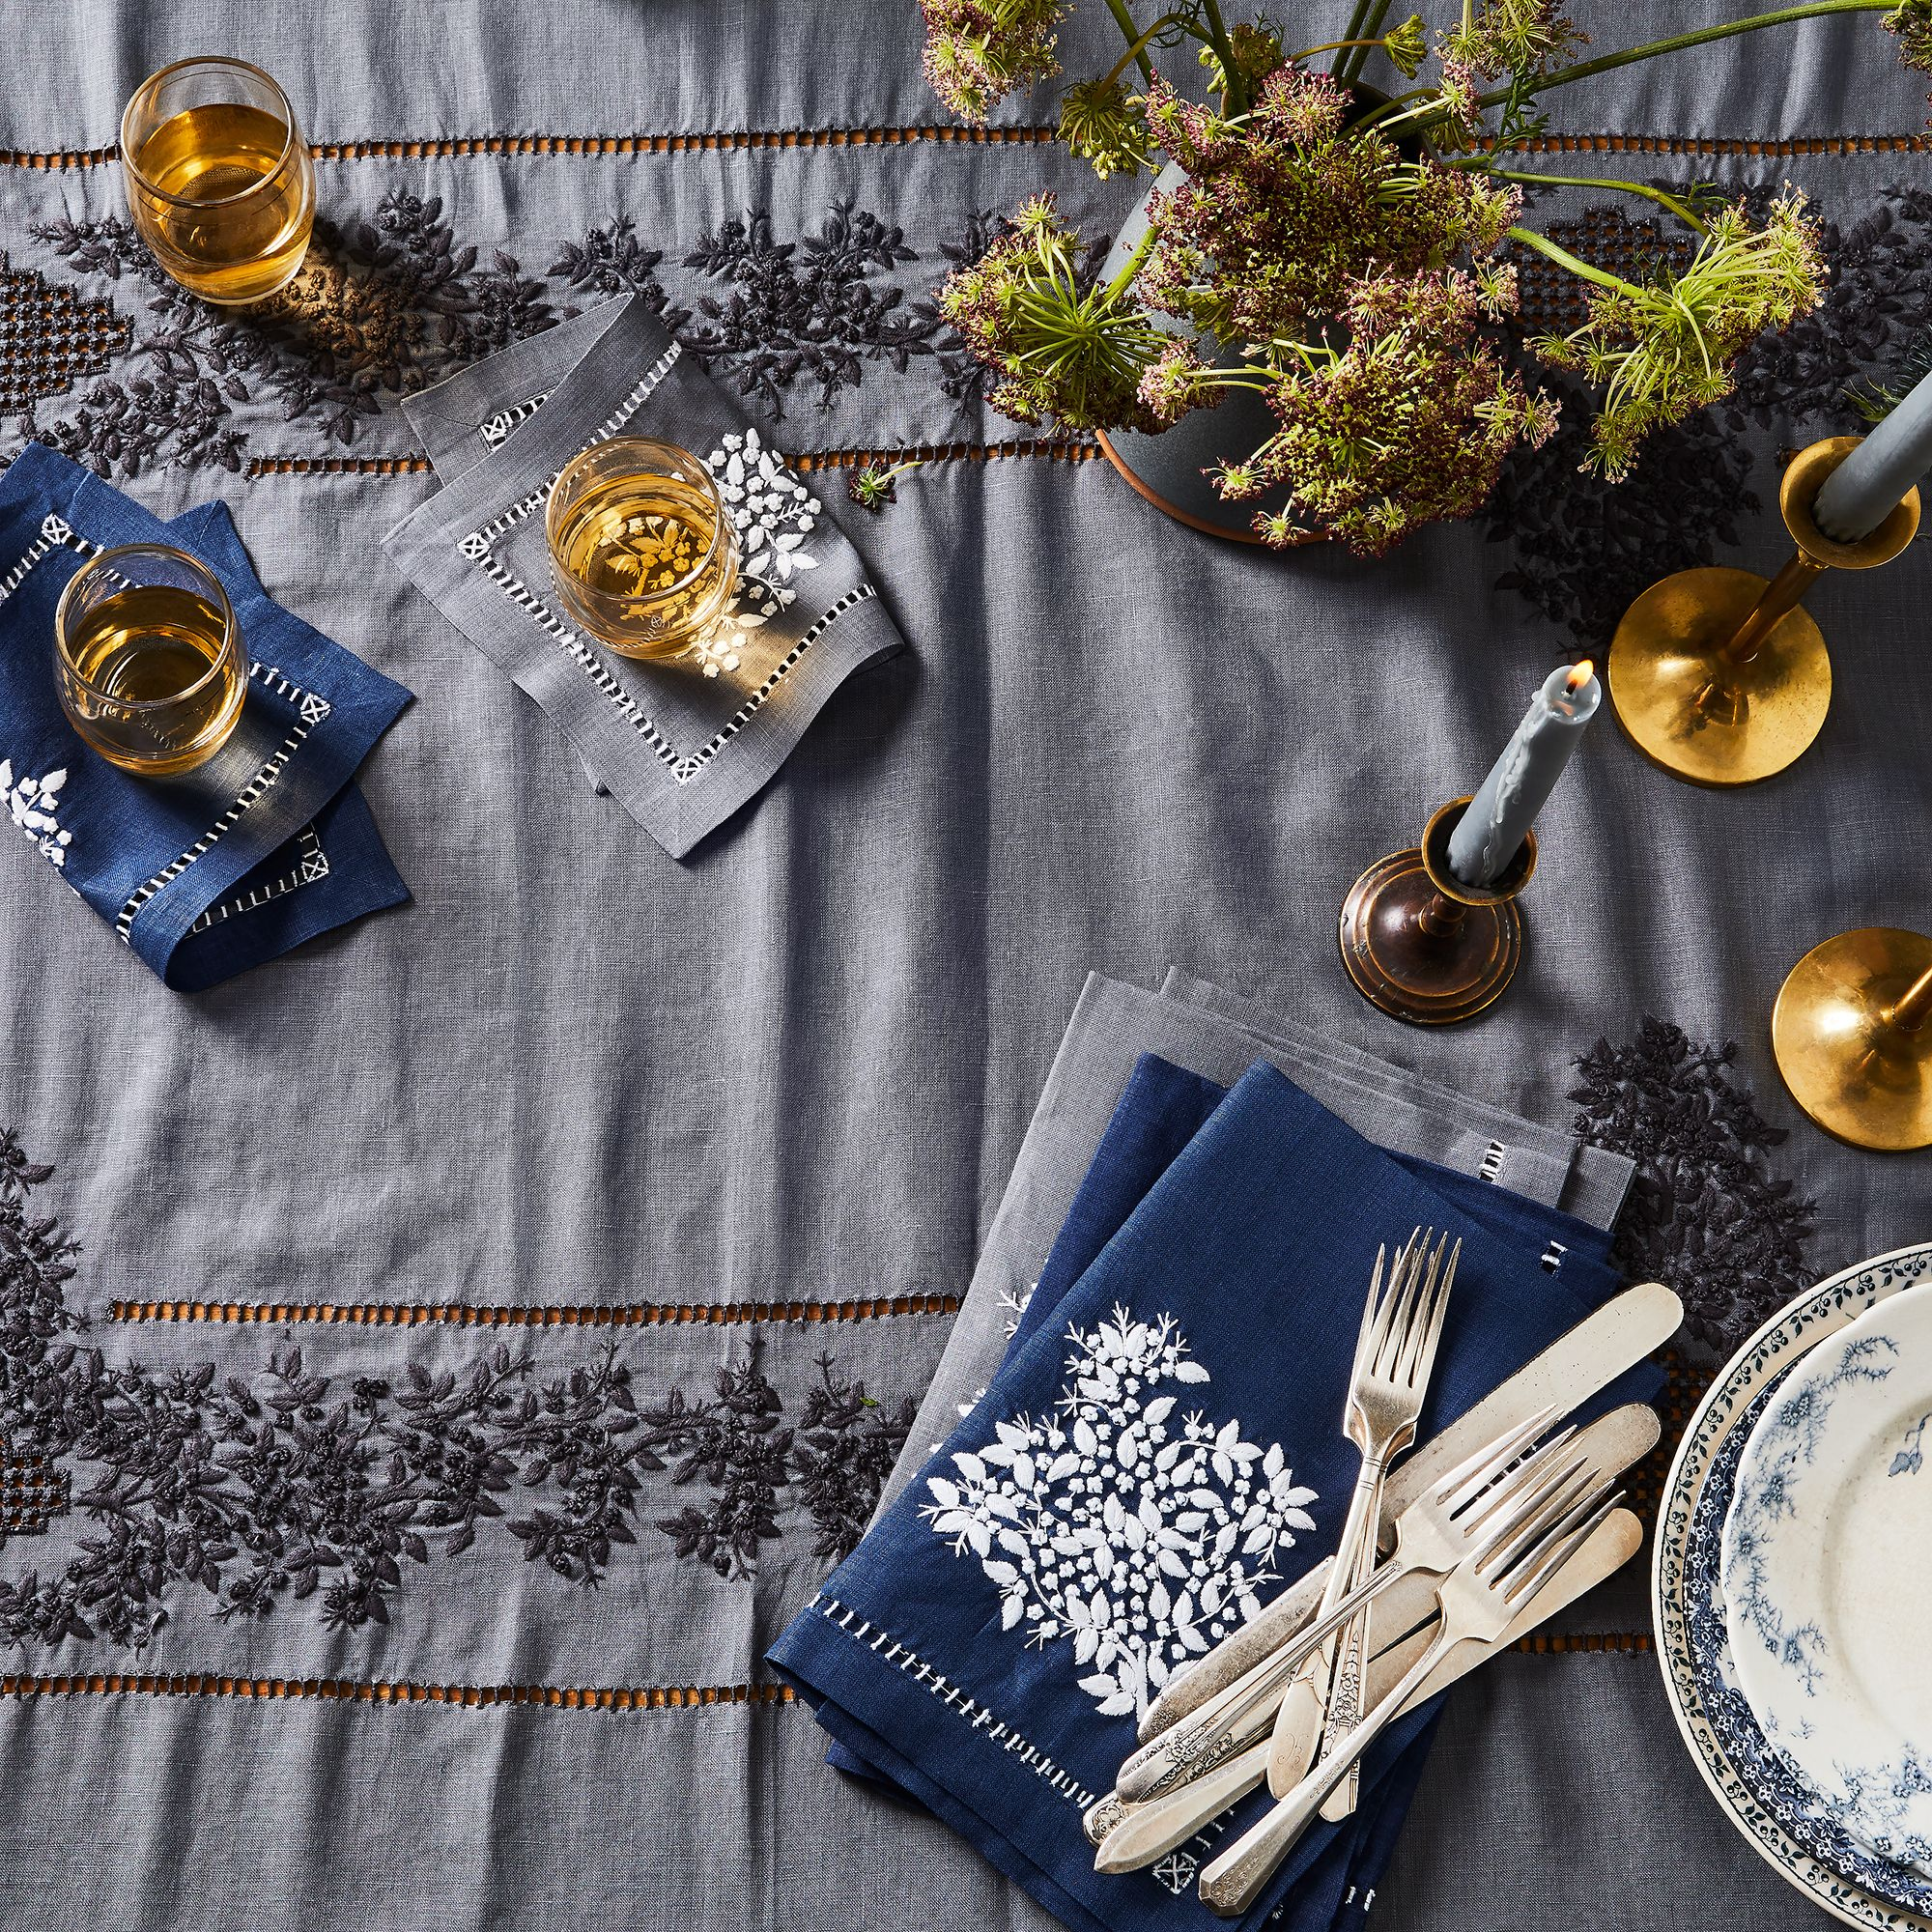 How To Set A Table Properly For Any Dinner Occasion From Formal To Casual